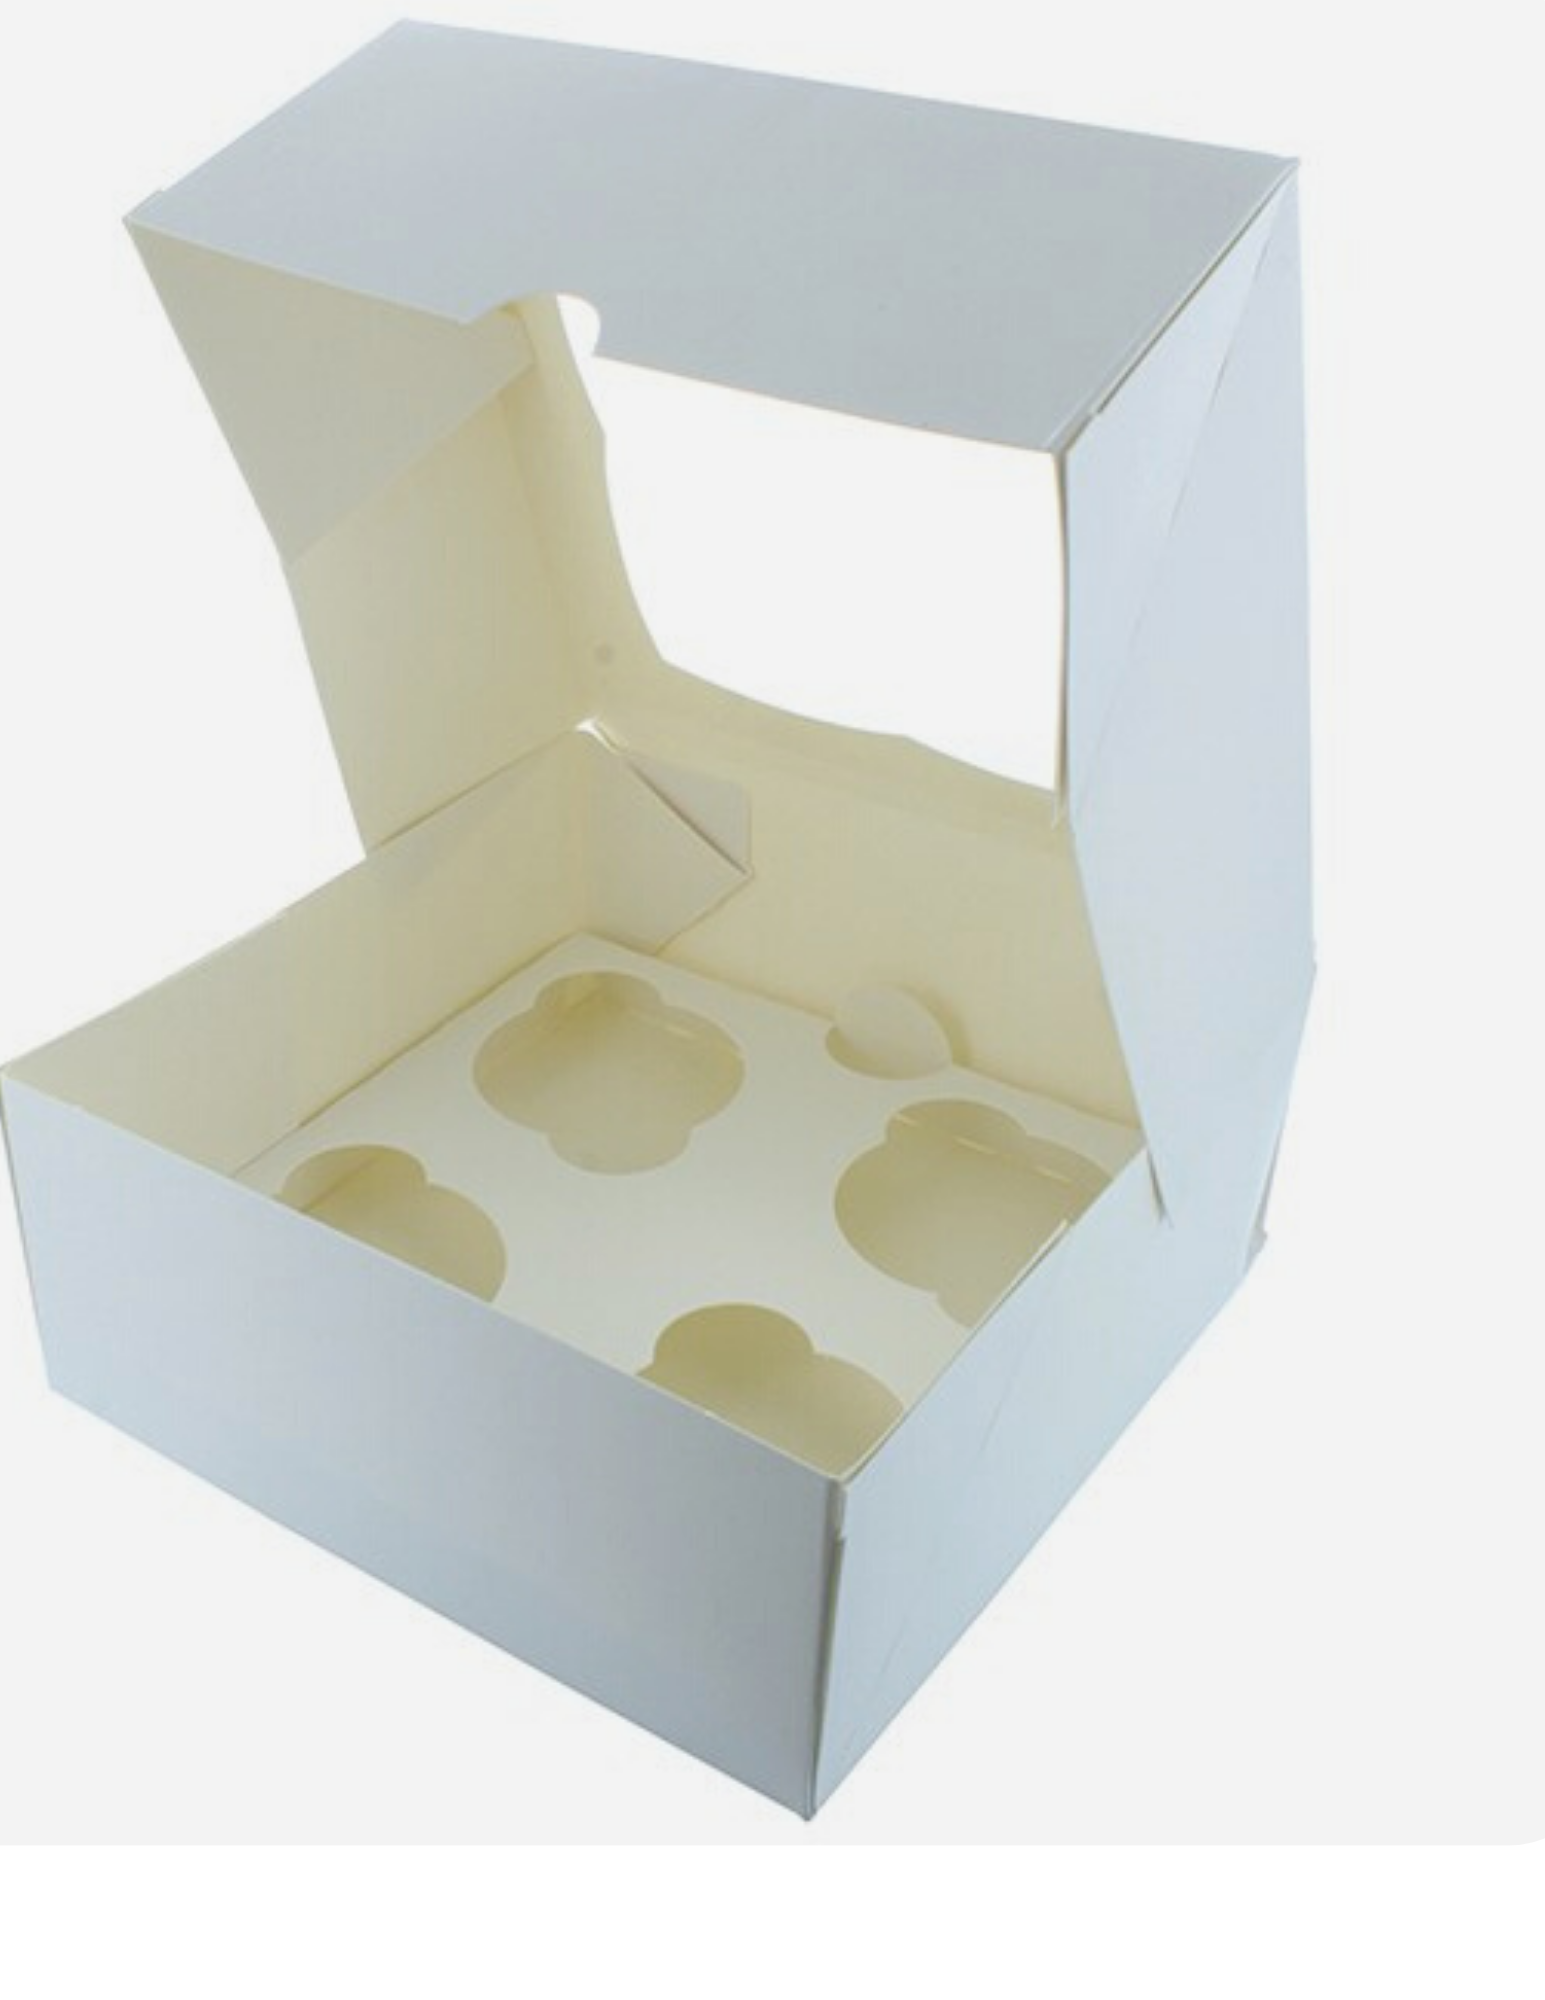 100 Cupcake Boxes 4 holder with Inserts (£0.26 each ) - cake boxes, cupcake boxes, thecakeboxes